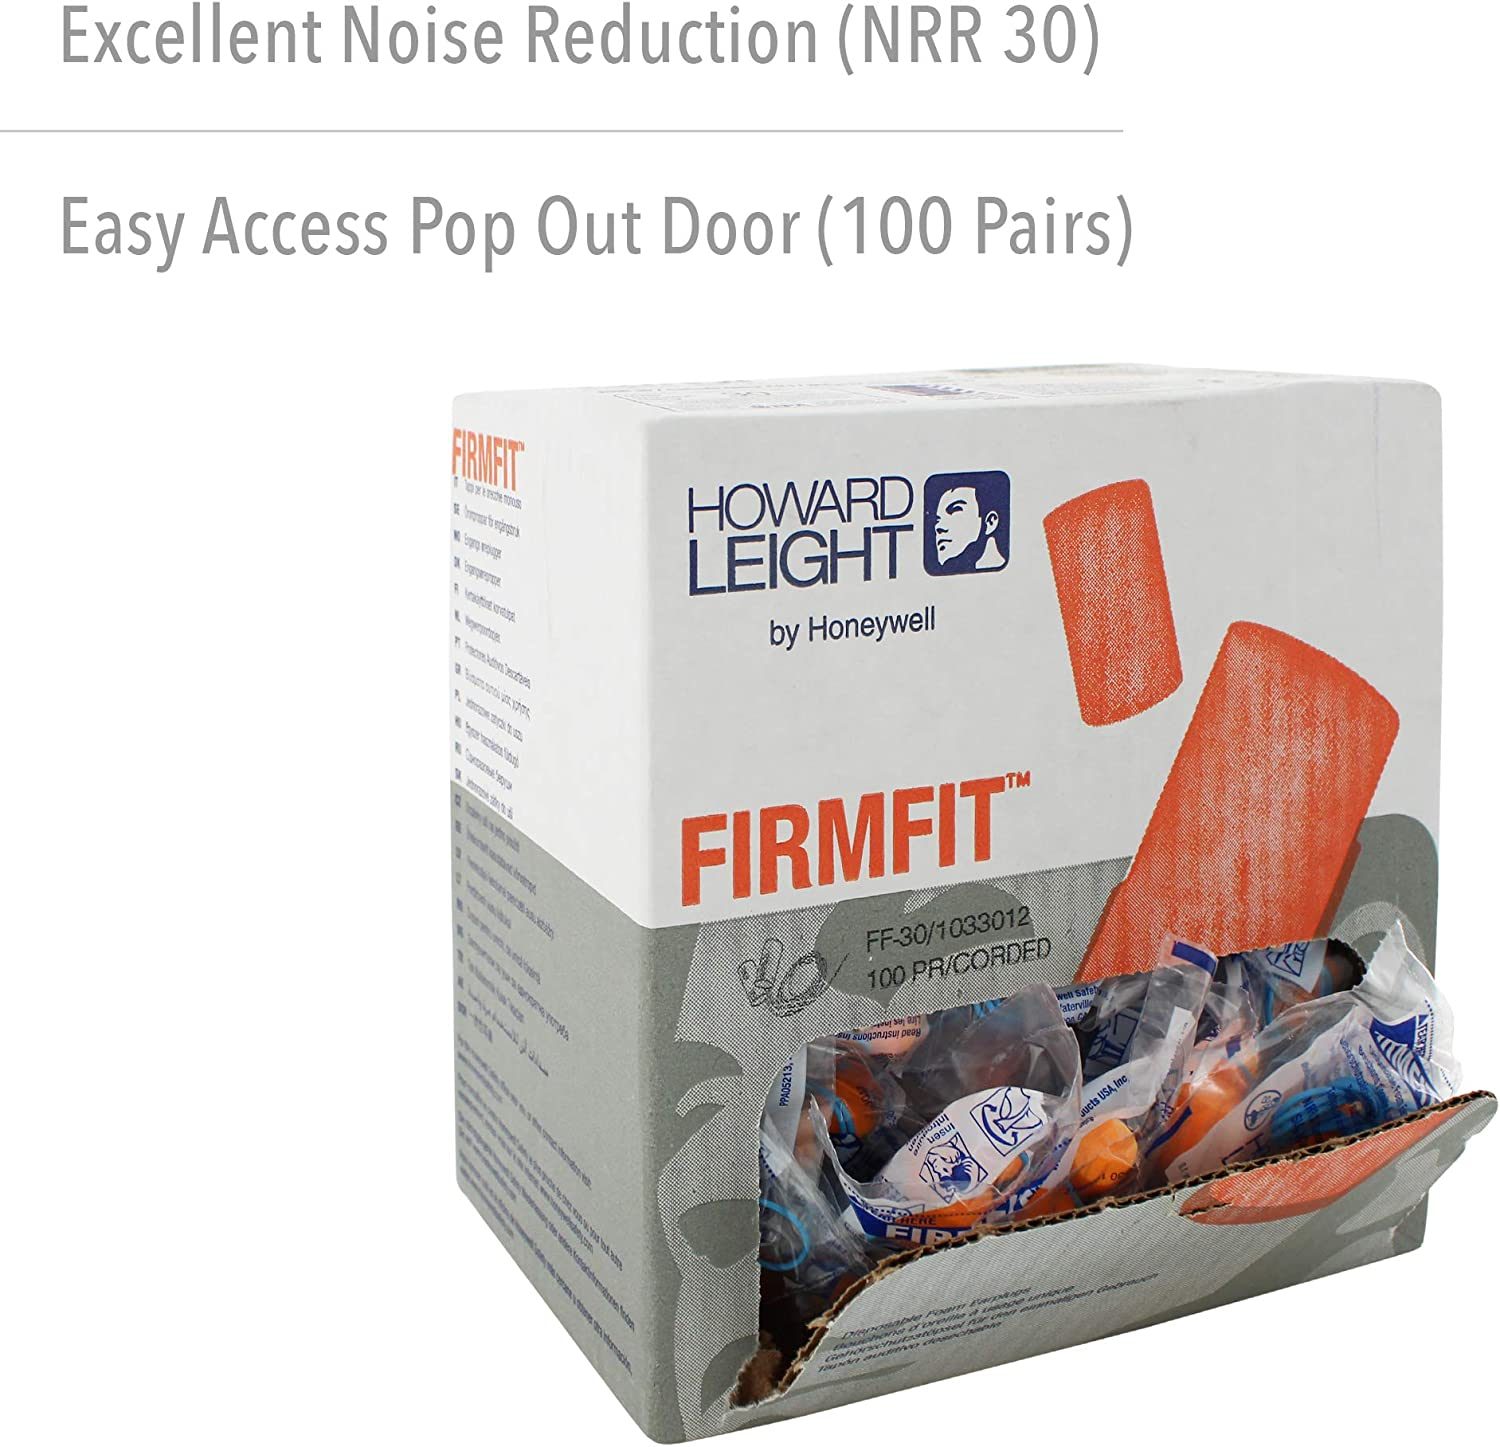 Howard Leight by Honeywell FirmFit Corded Disposable Foam Earplugs 100-Pairs Paper Bag FF-30-PB